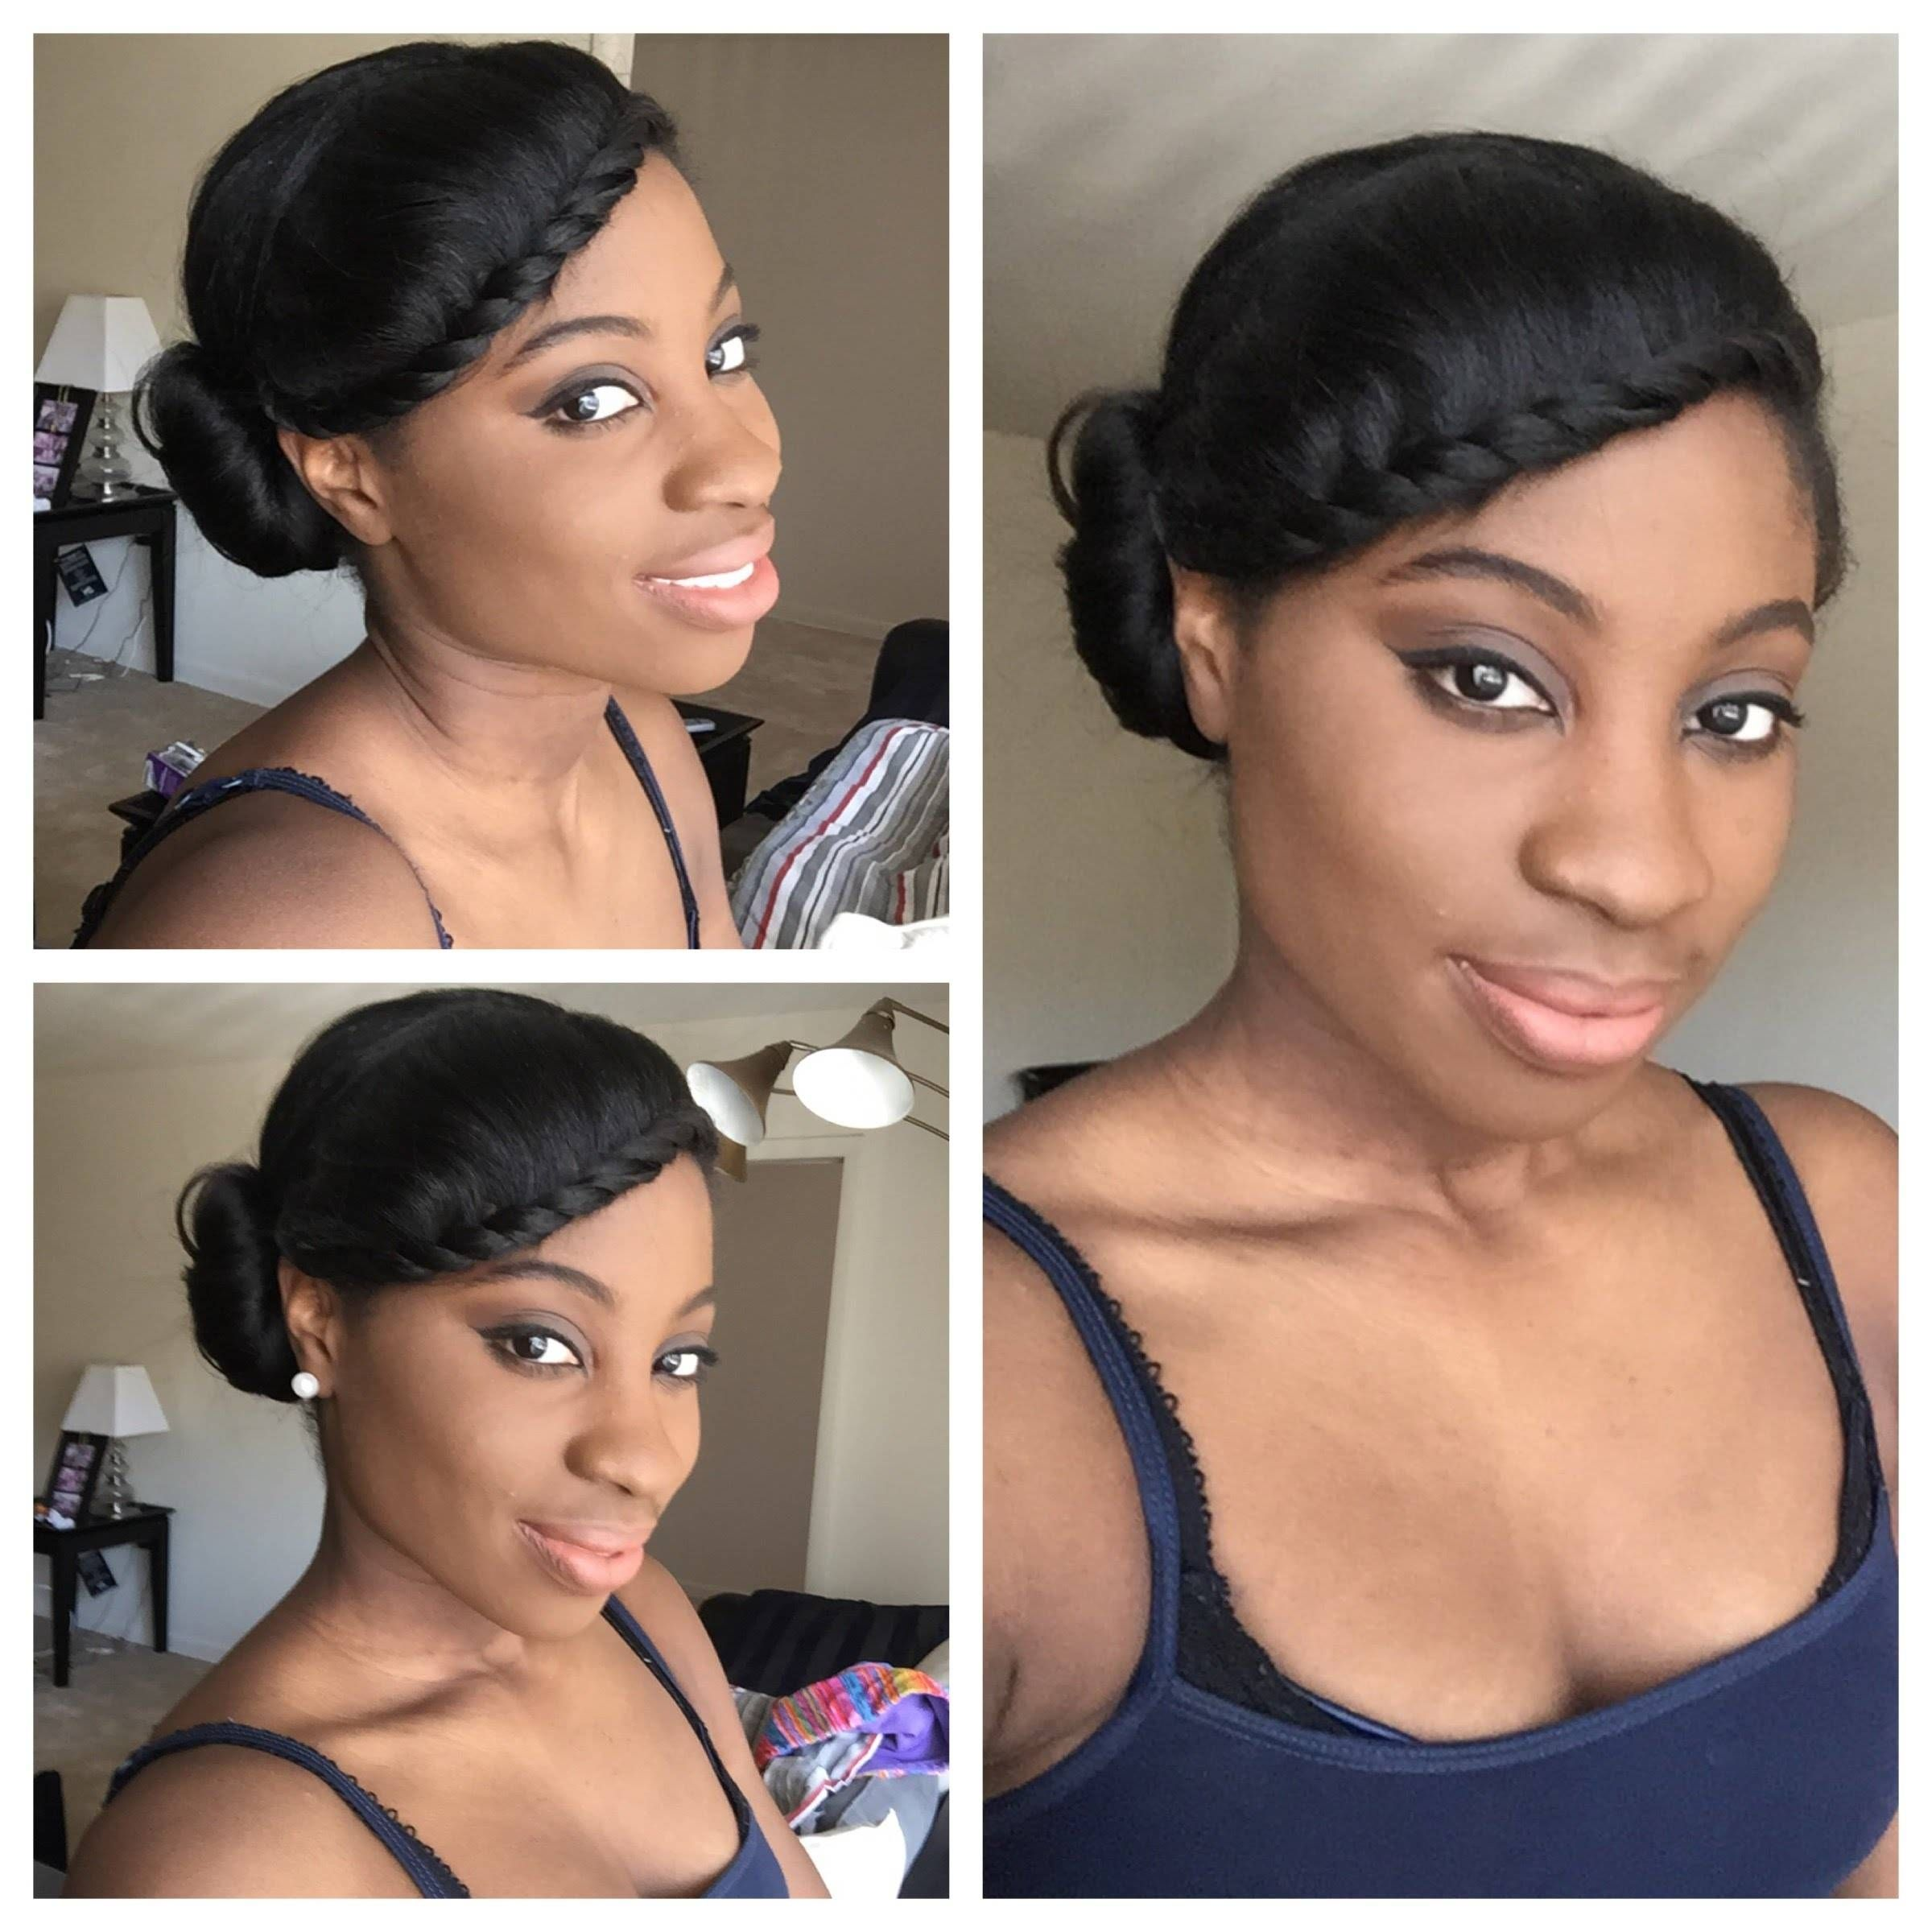 Simple Protective Style Relaxed Hair Youtube Short Relaxed Hairstyles Natural Hair Styles Hair Videos